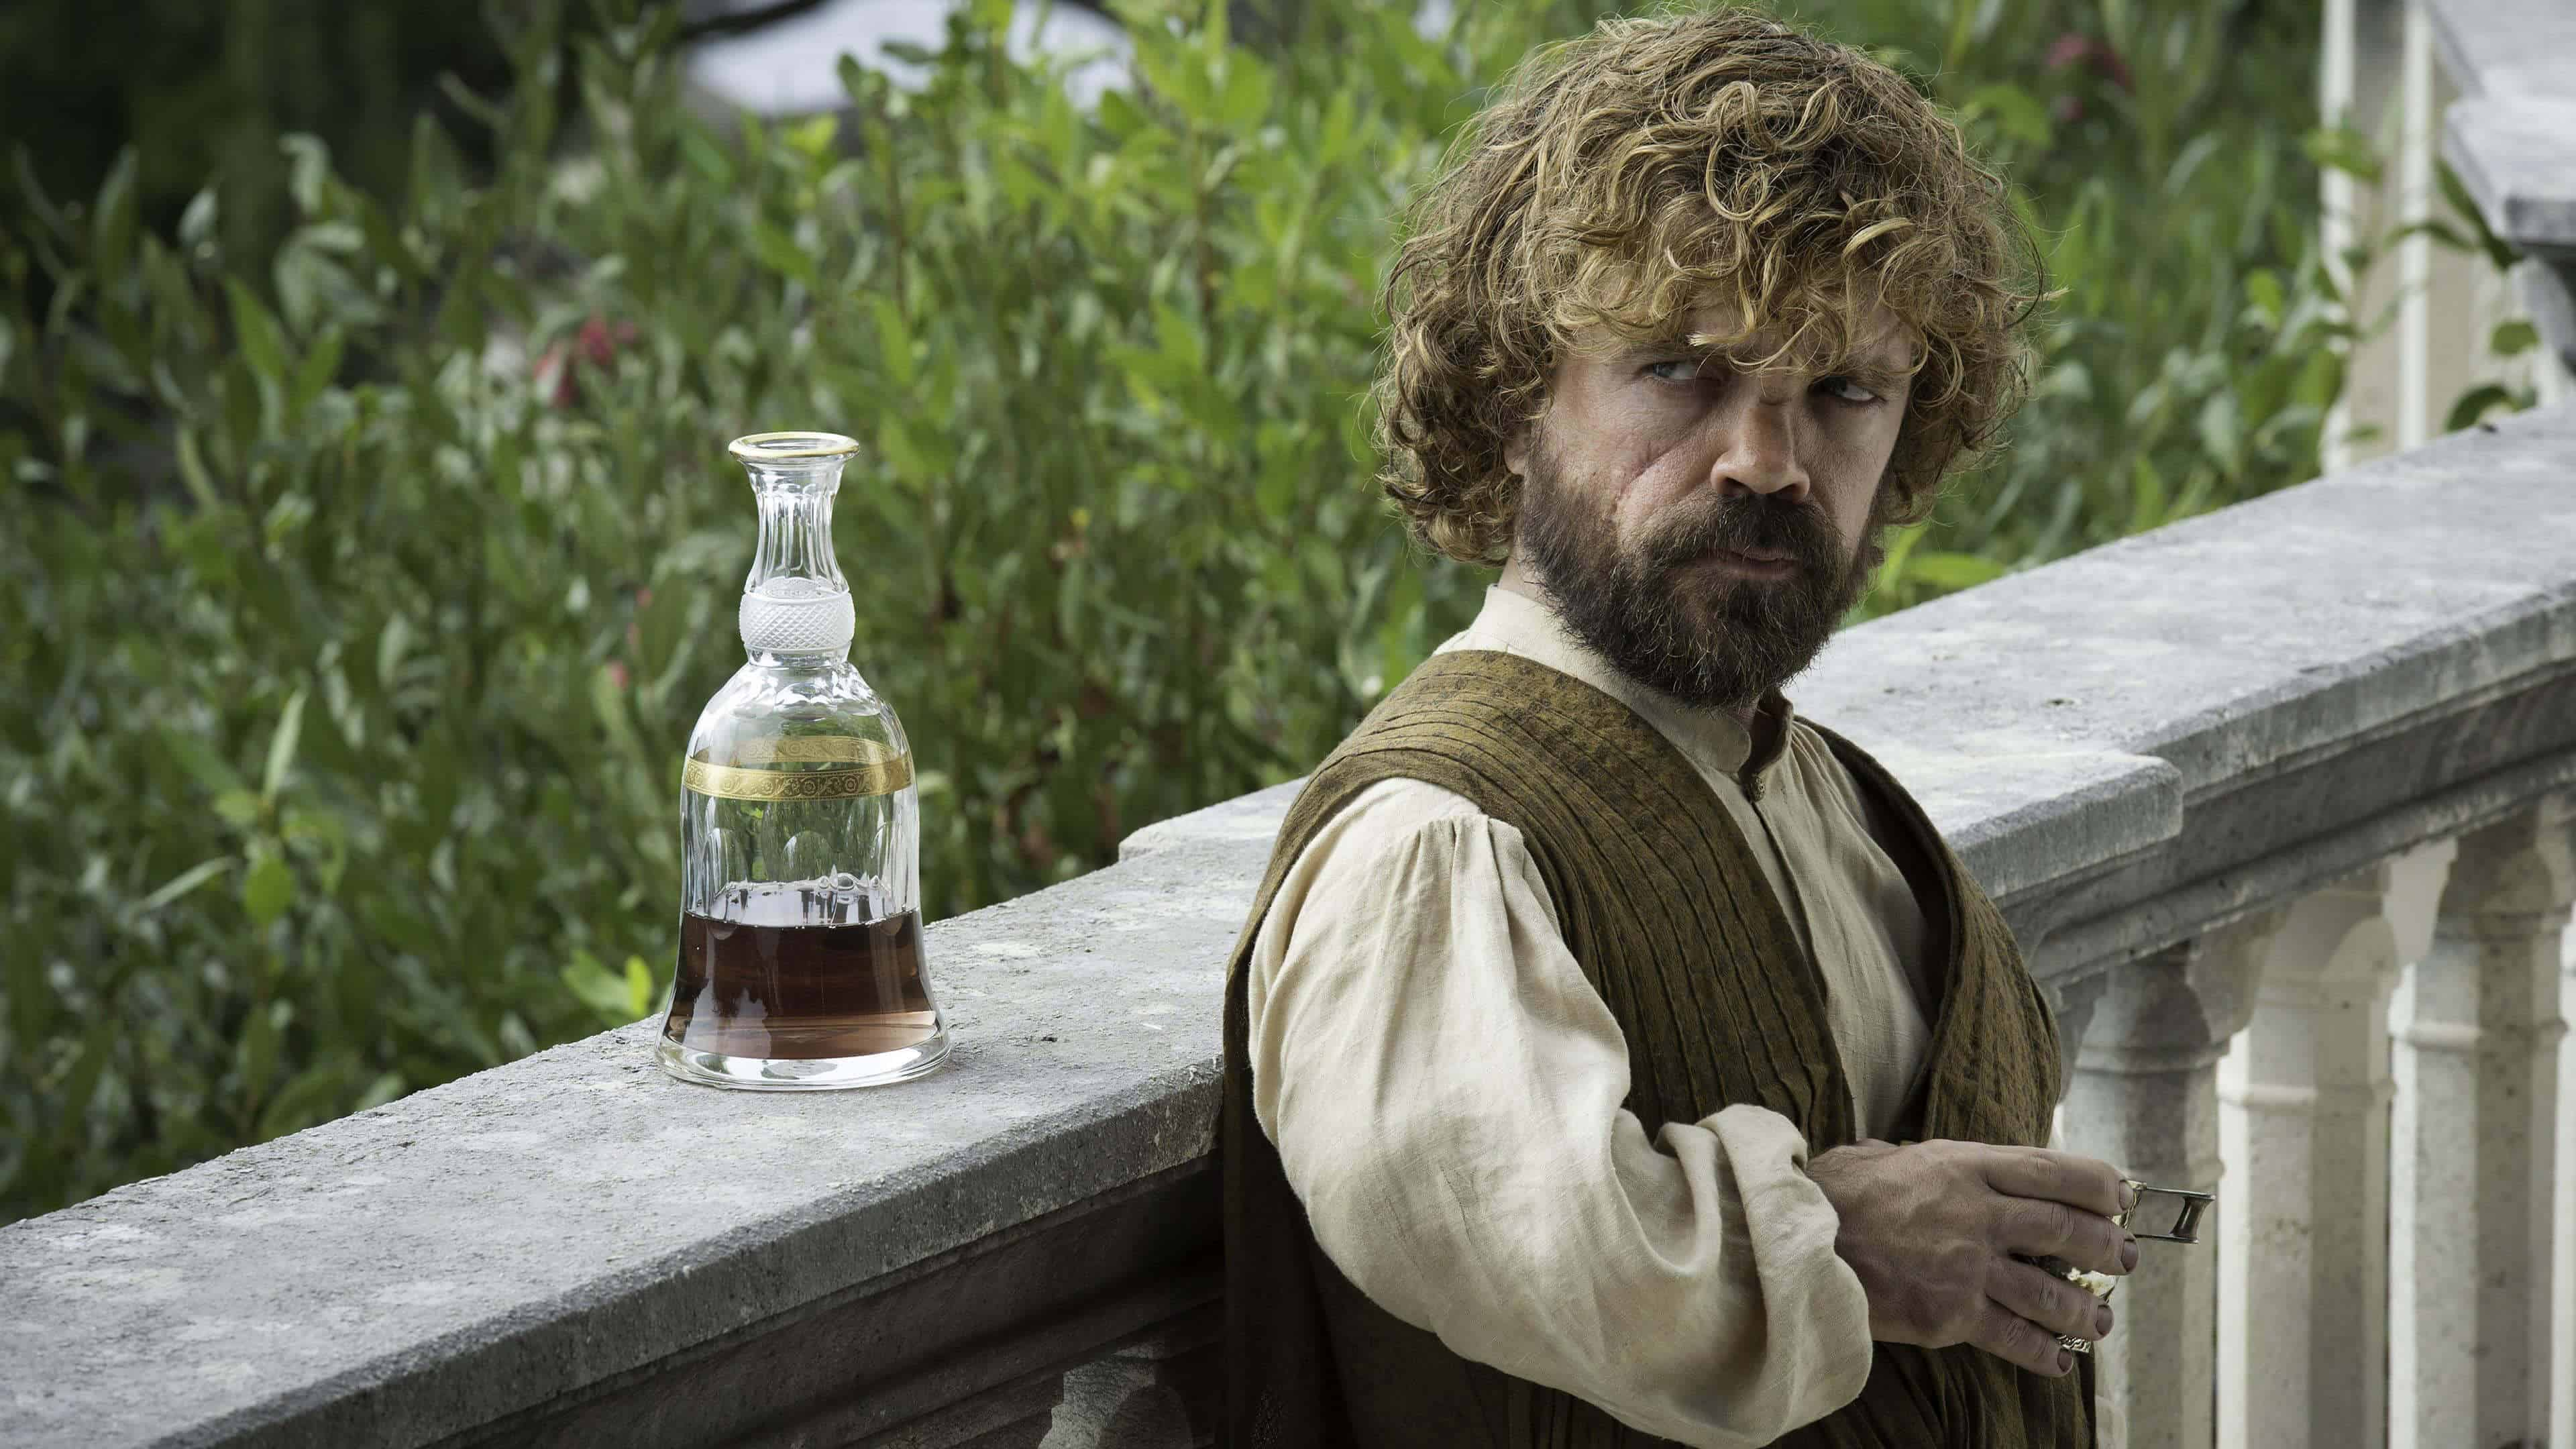 game of thrones tyrion lannister uhd 4k wallpaper